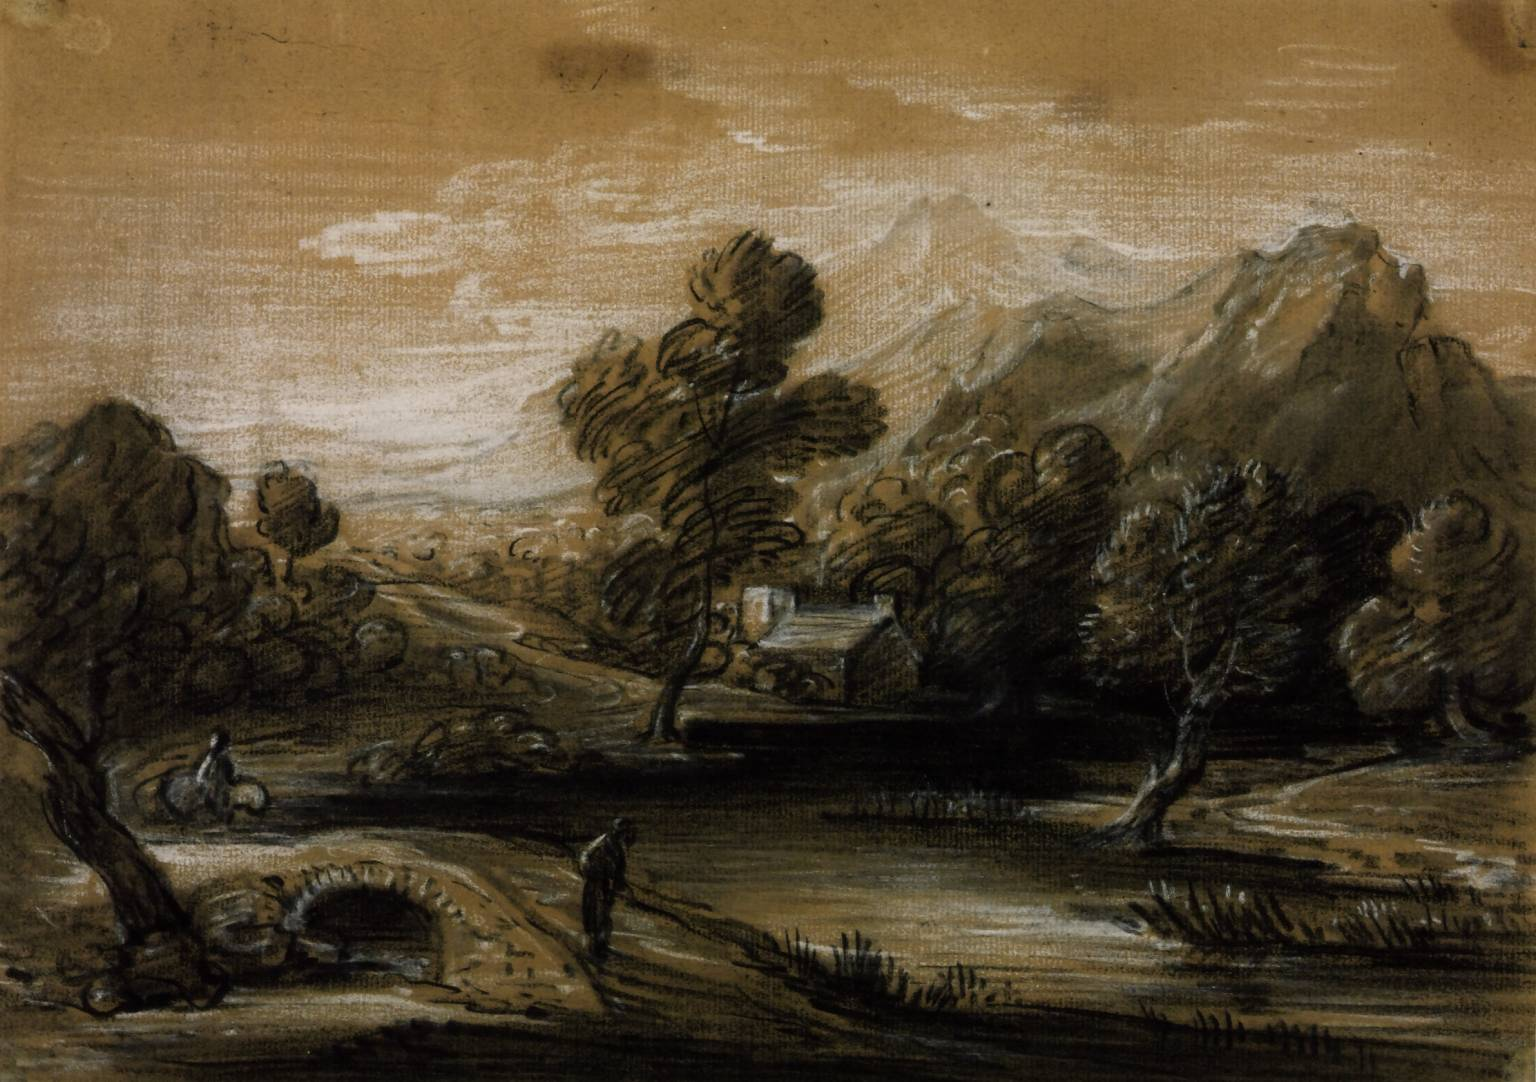 Wooded Mountain Landscape with Figures, Church and River circa 1785-8 Thomas Gainsborough 1727-1788 Presented by T. Birch Wolfe 1878 http://www.tate.org.uk/